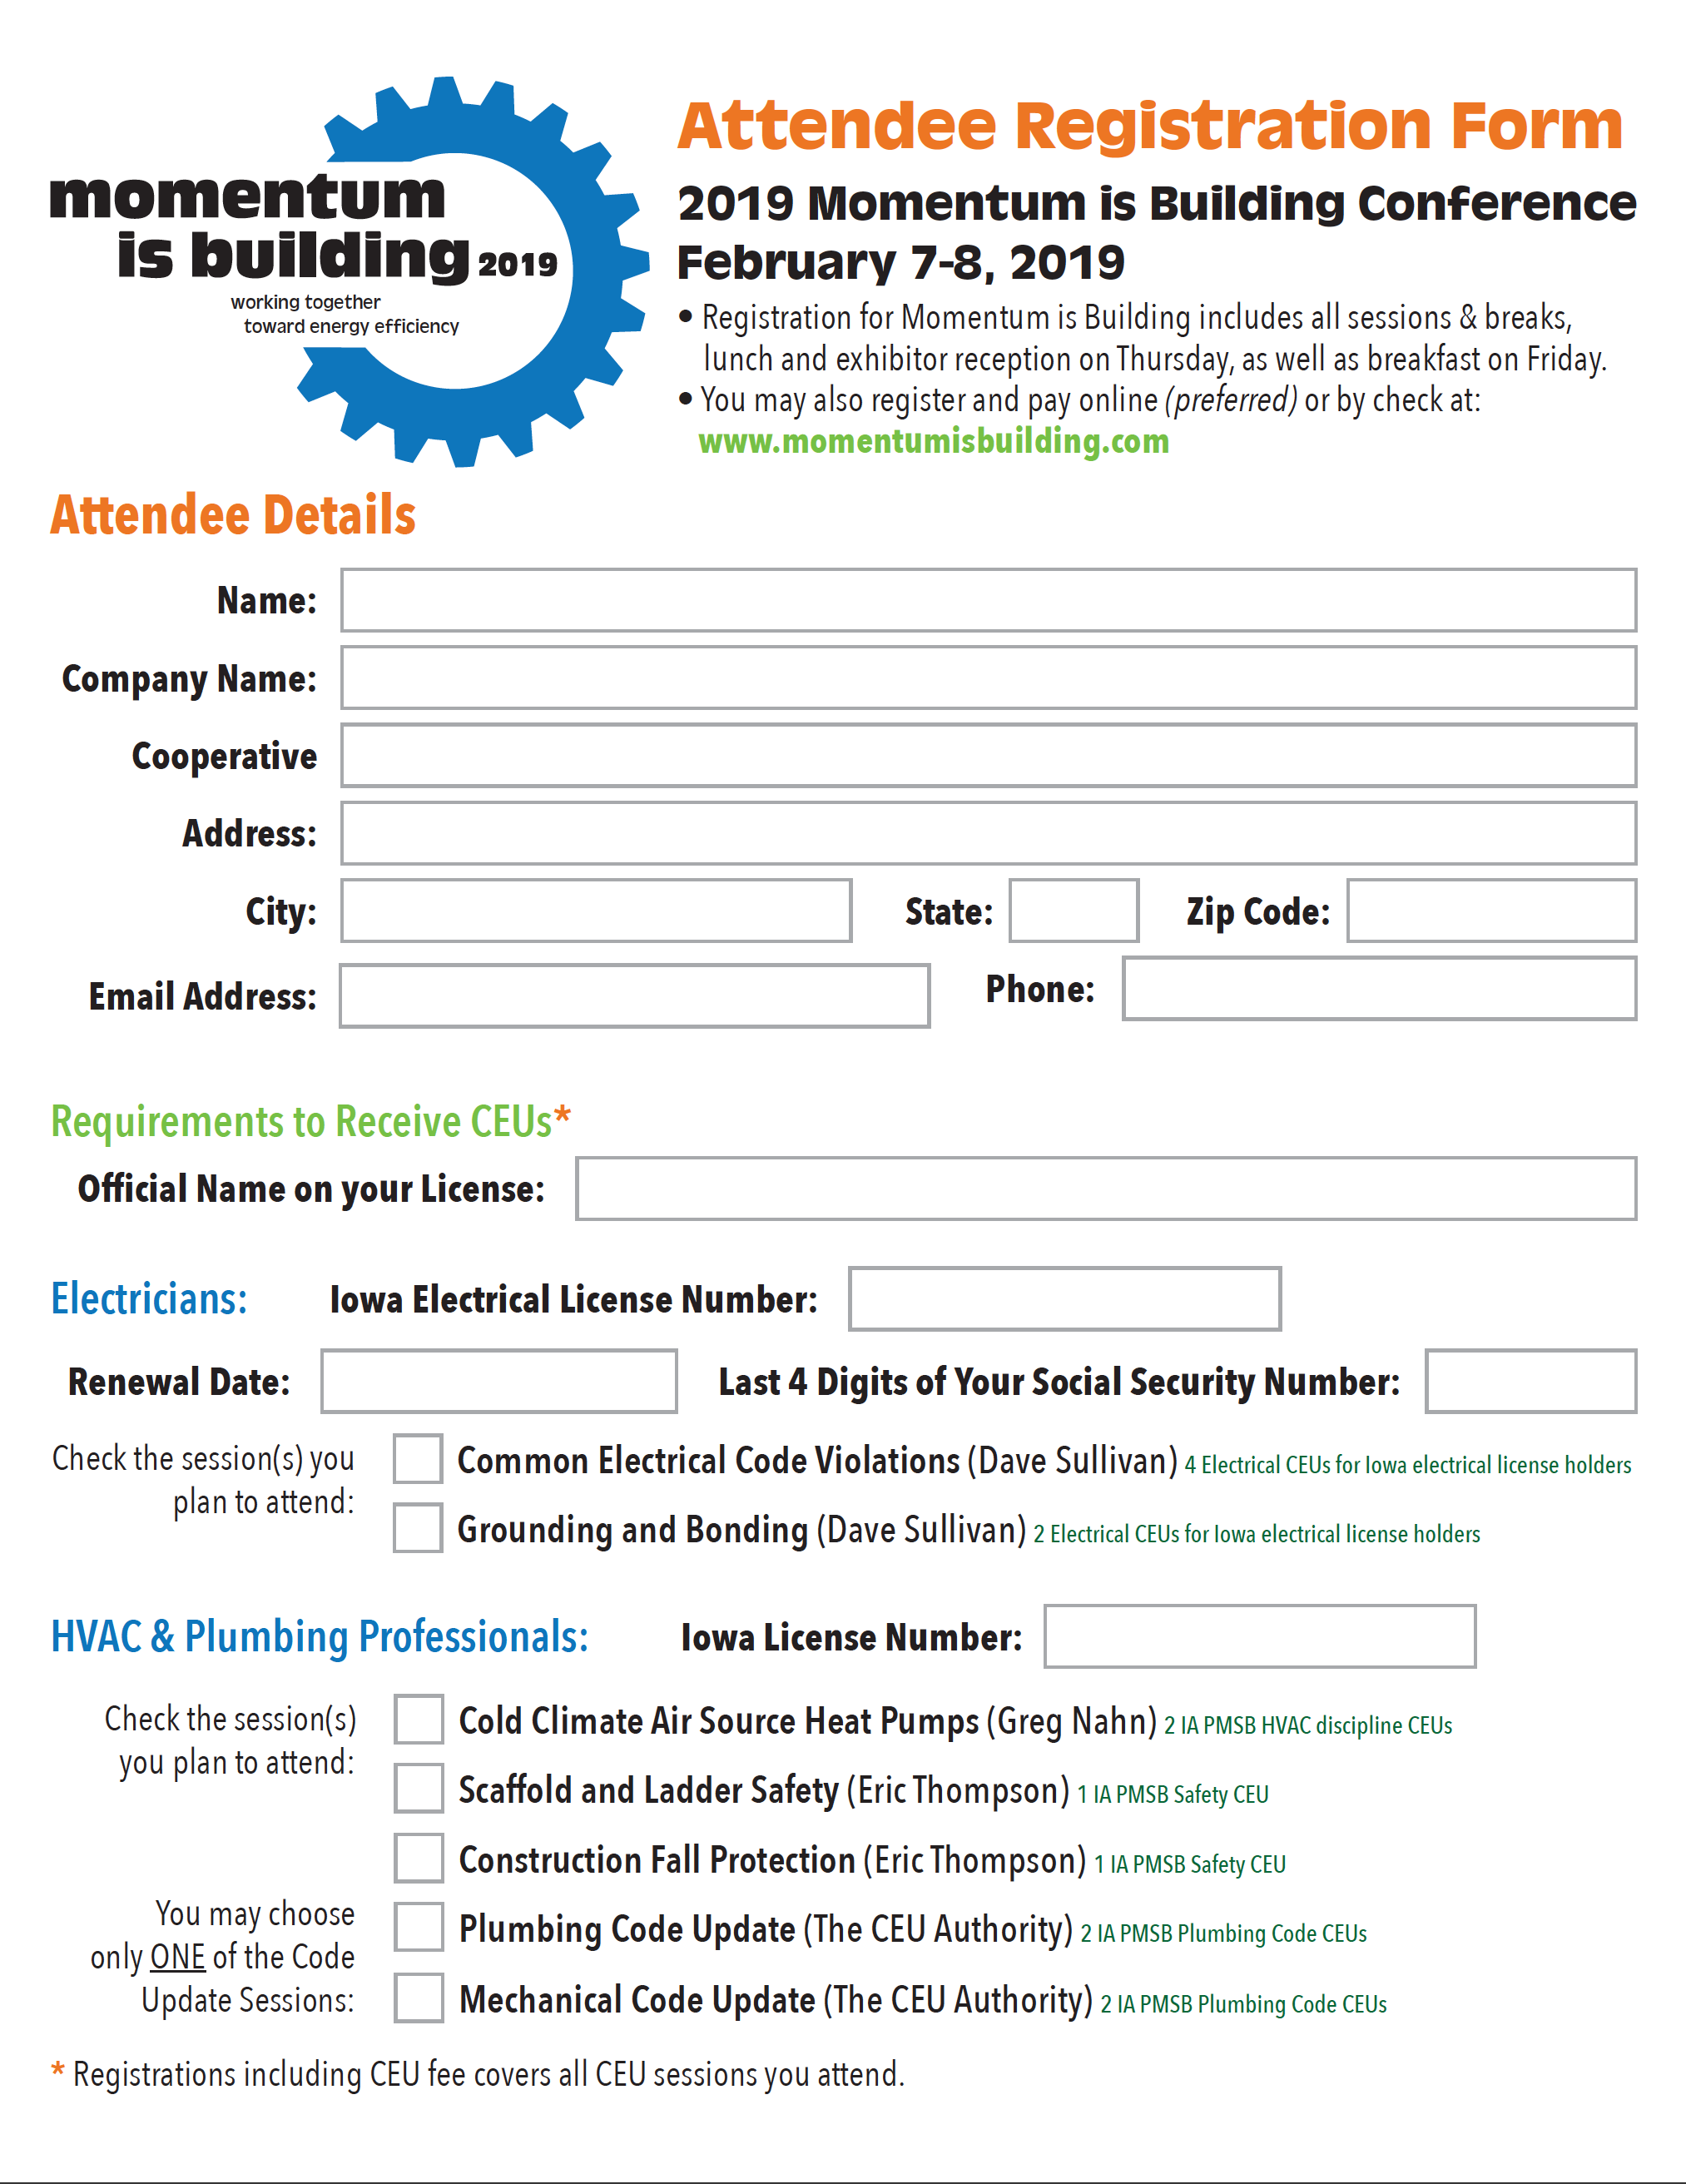 Attendee Registration Form - 2019 Momentum is Building